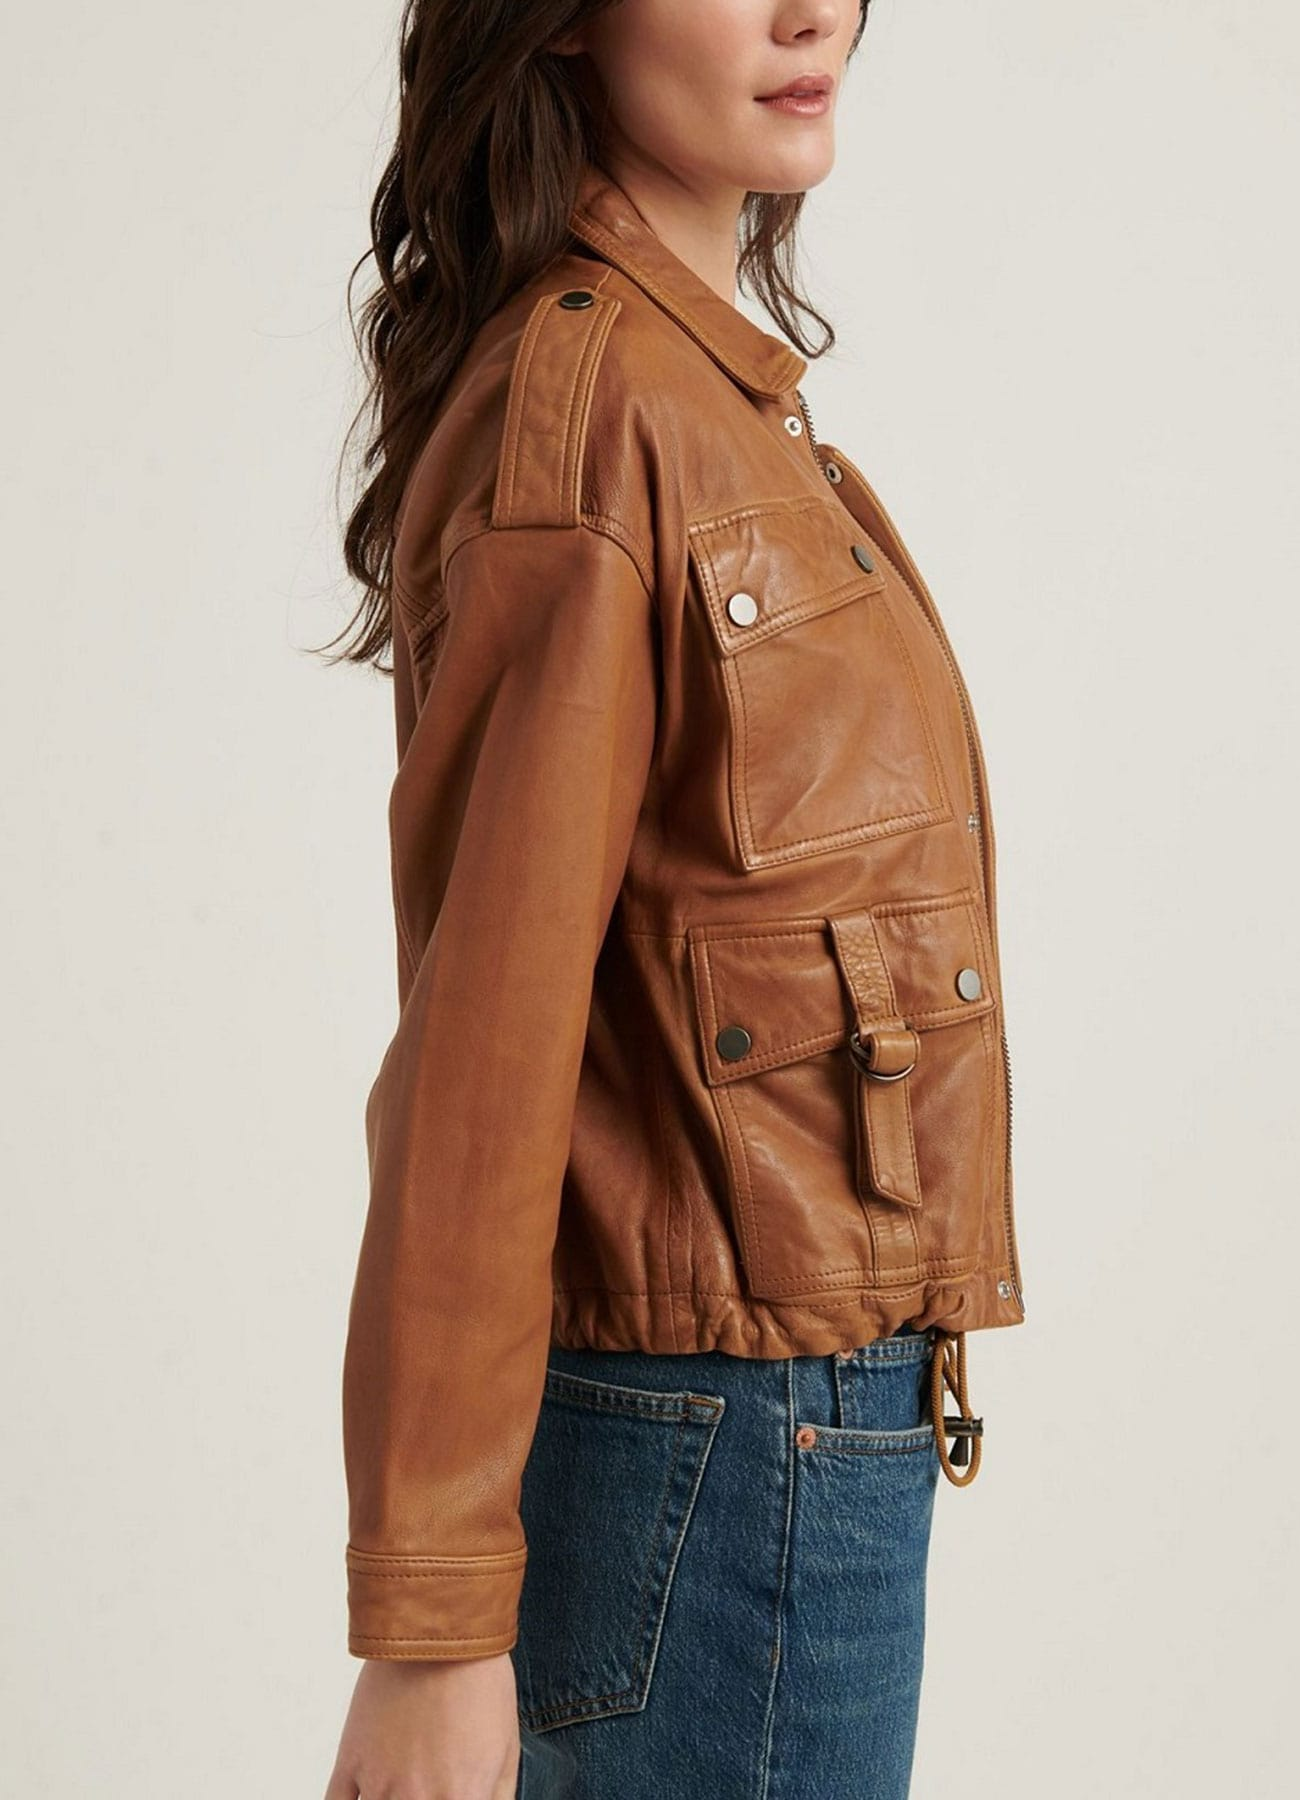 Women Stylish Brown Cowhide Leather Jacket